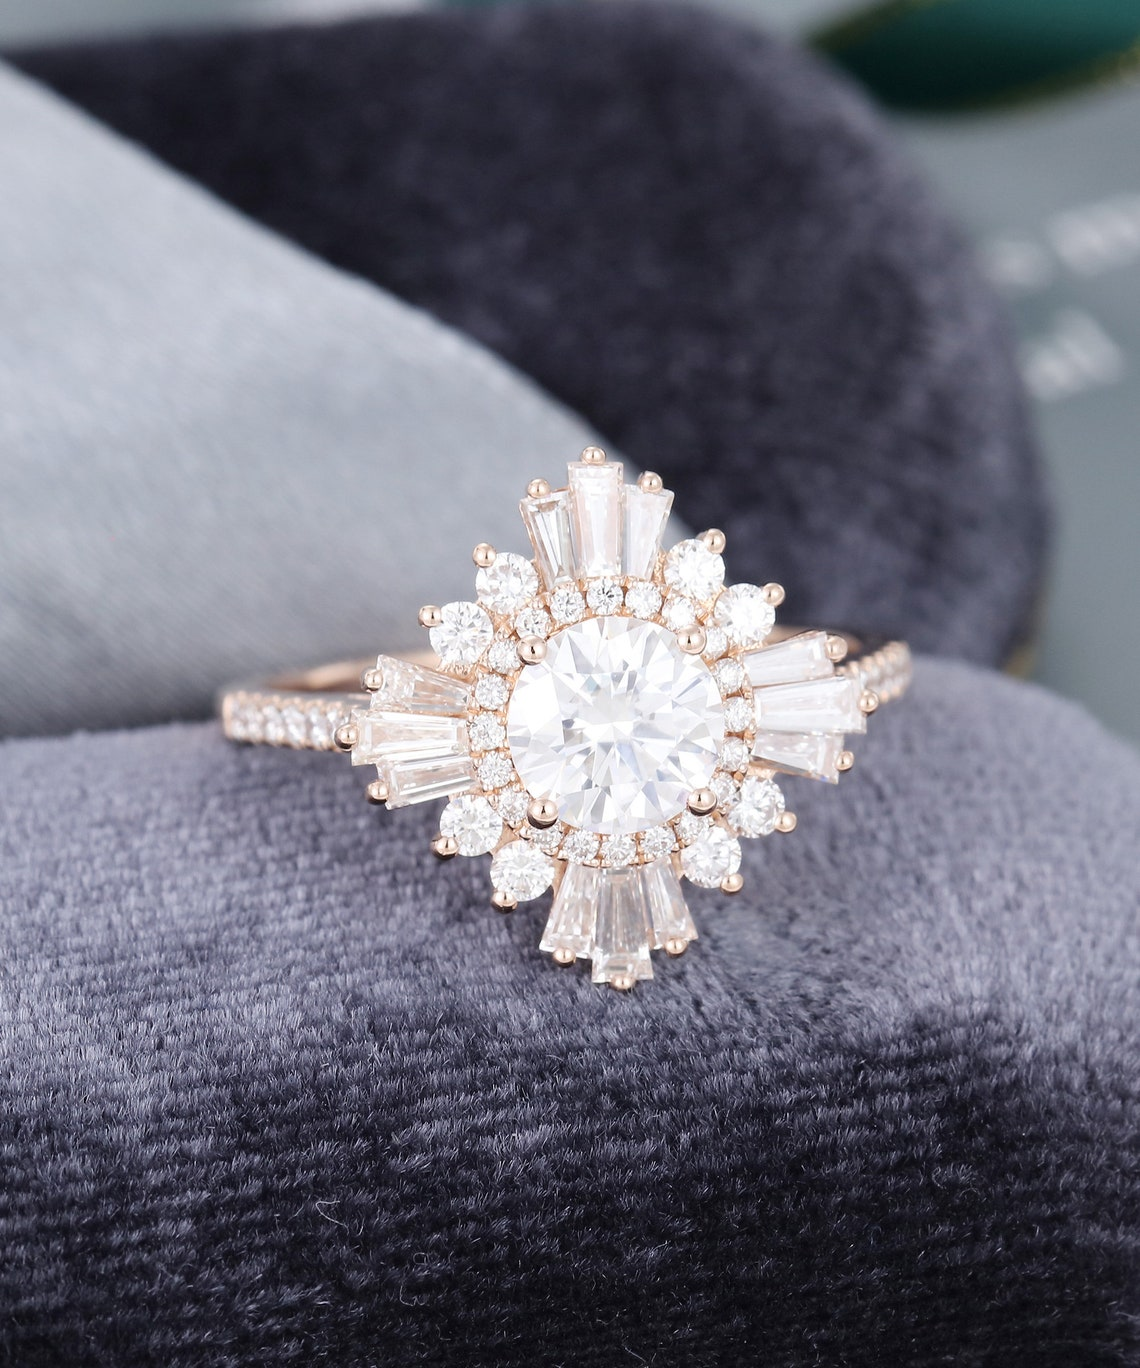 Vintage engagement ring rose gold Unique moissanite halo image 2